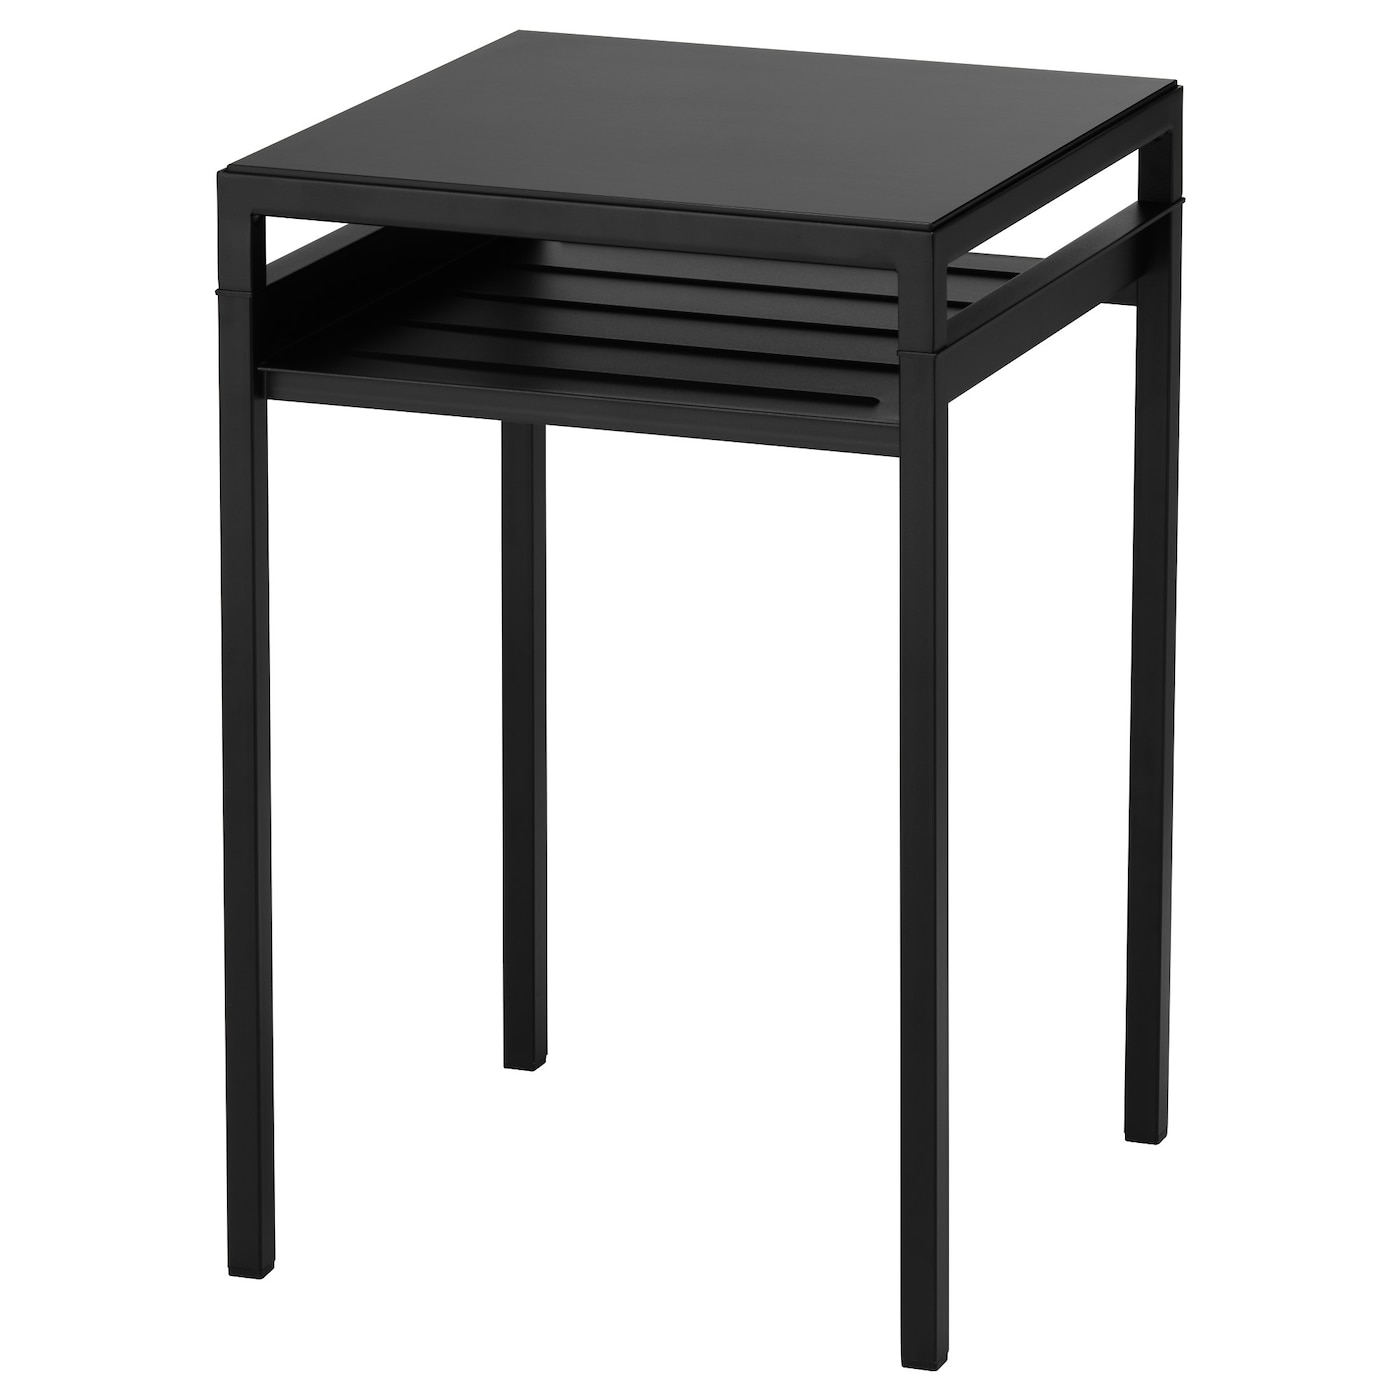 nyboda side table w reversible table top black beige 40 x 40 x 60 cm ikea. Black Bedroom Furniture Sets. Home Design Ideas